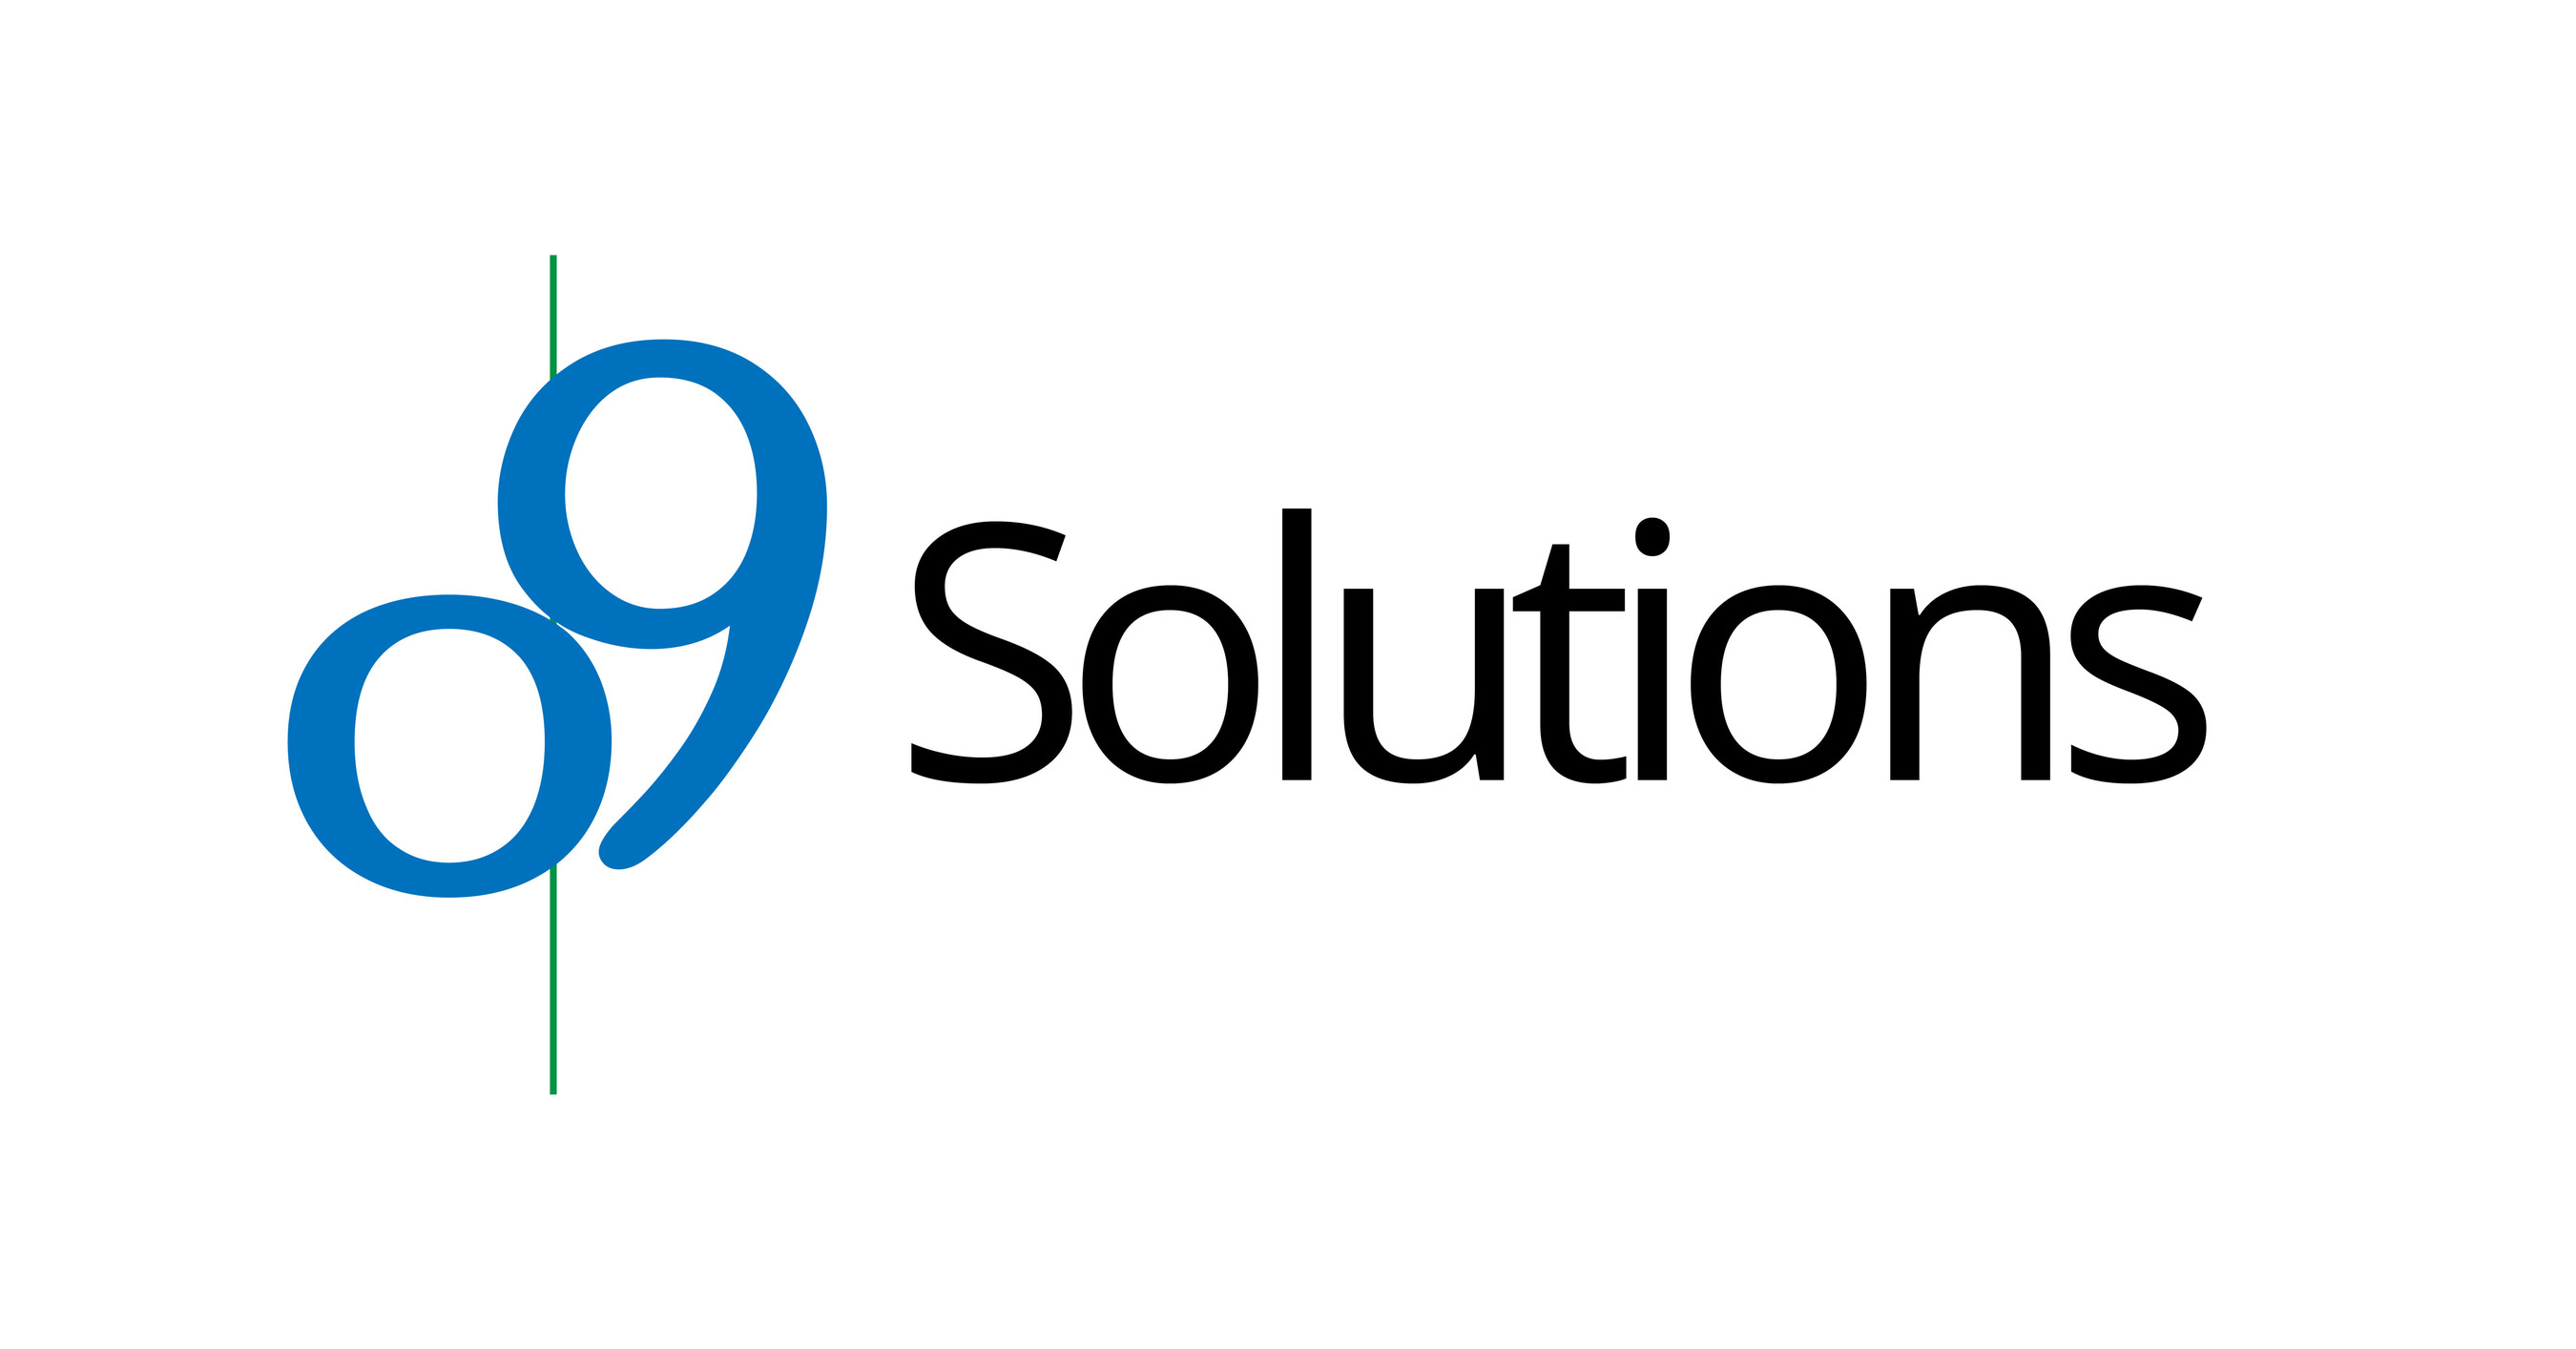 o9 Solutions positioned by Gartner as Highest and Furthest in the